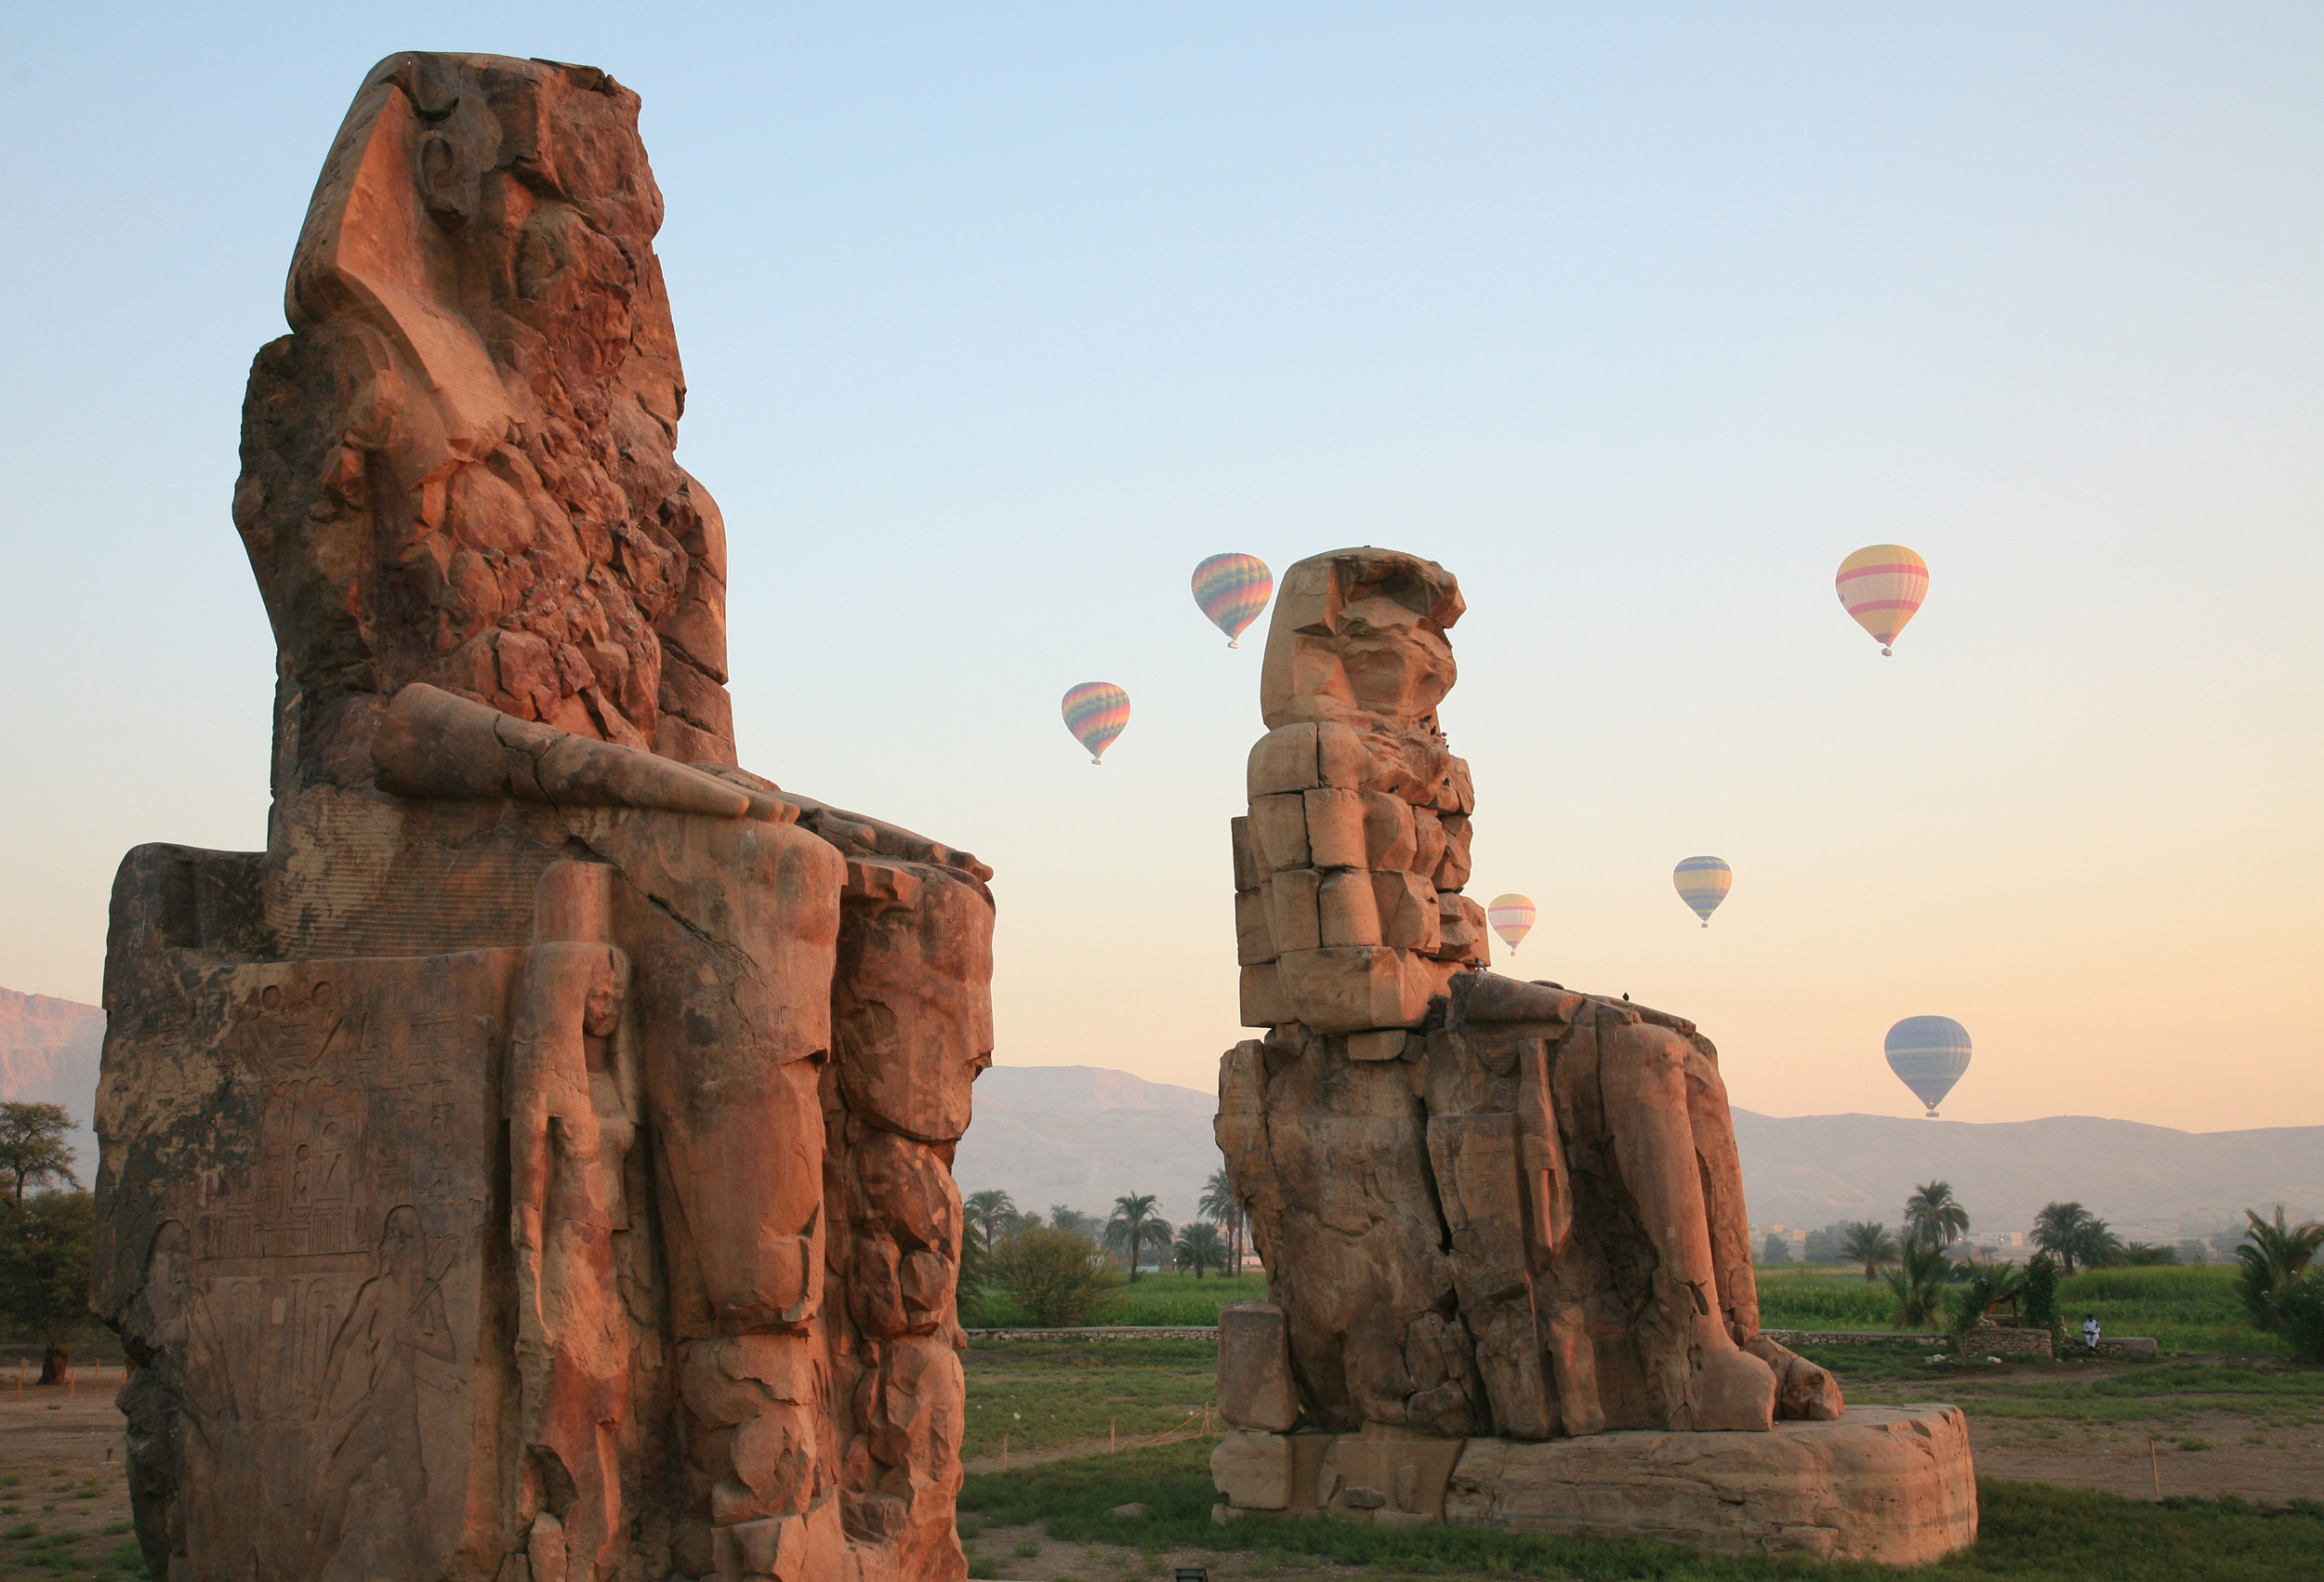 Two colossal seated red stone statues with hot air balloons floating in the background at Luxor